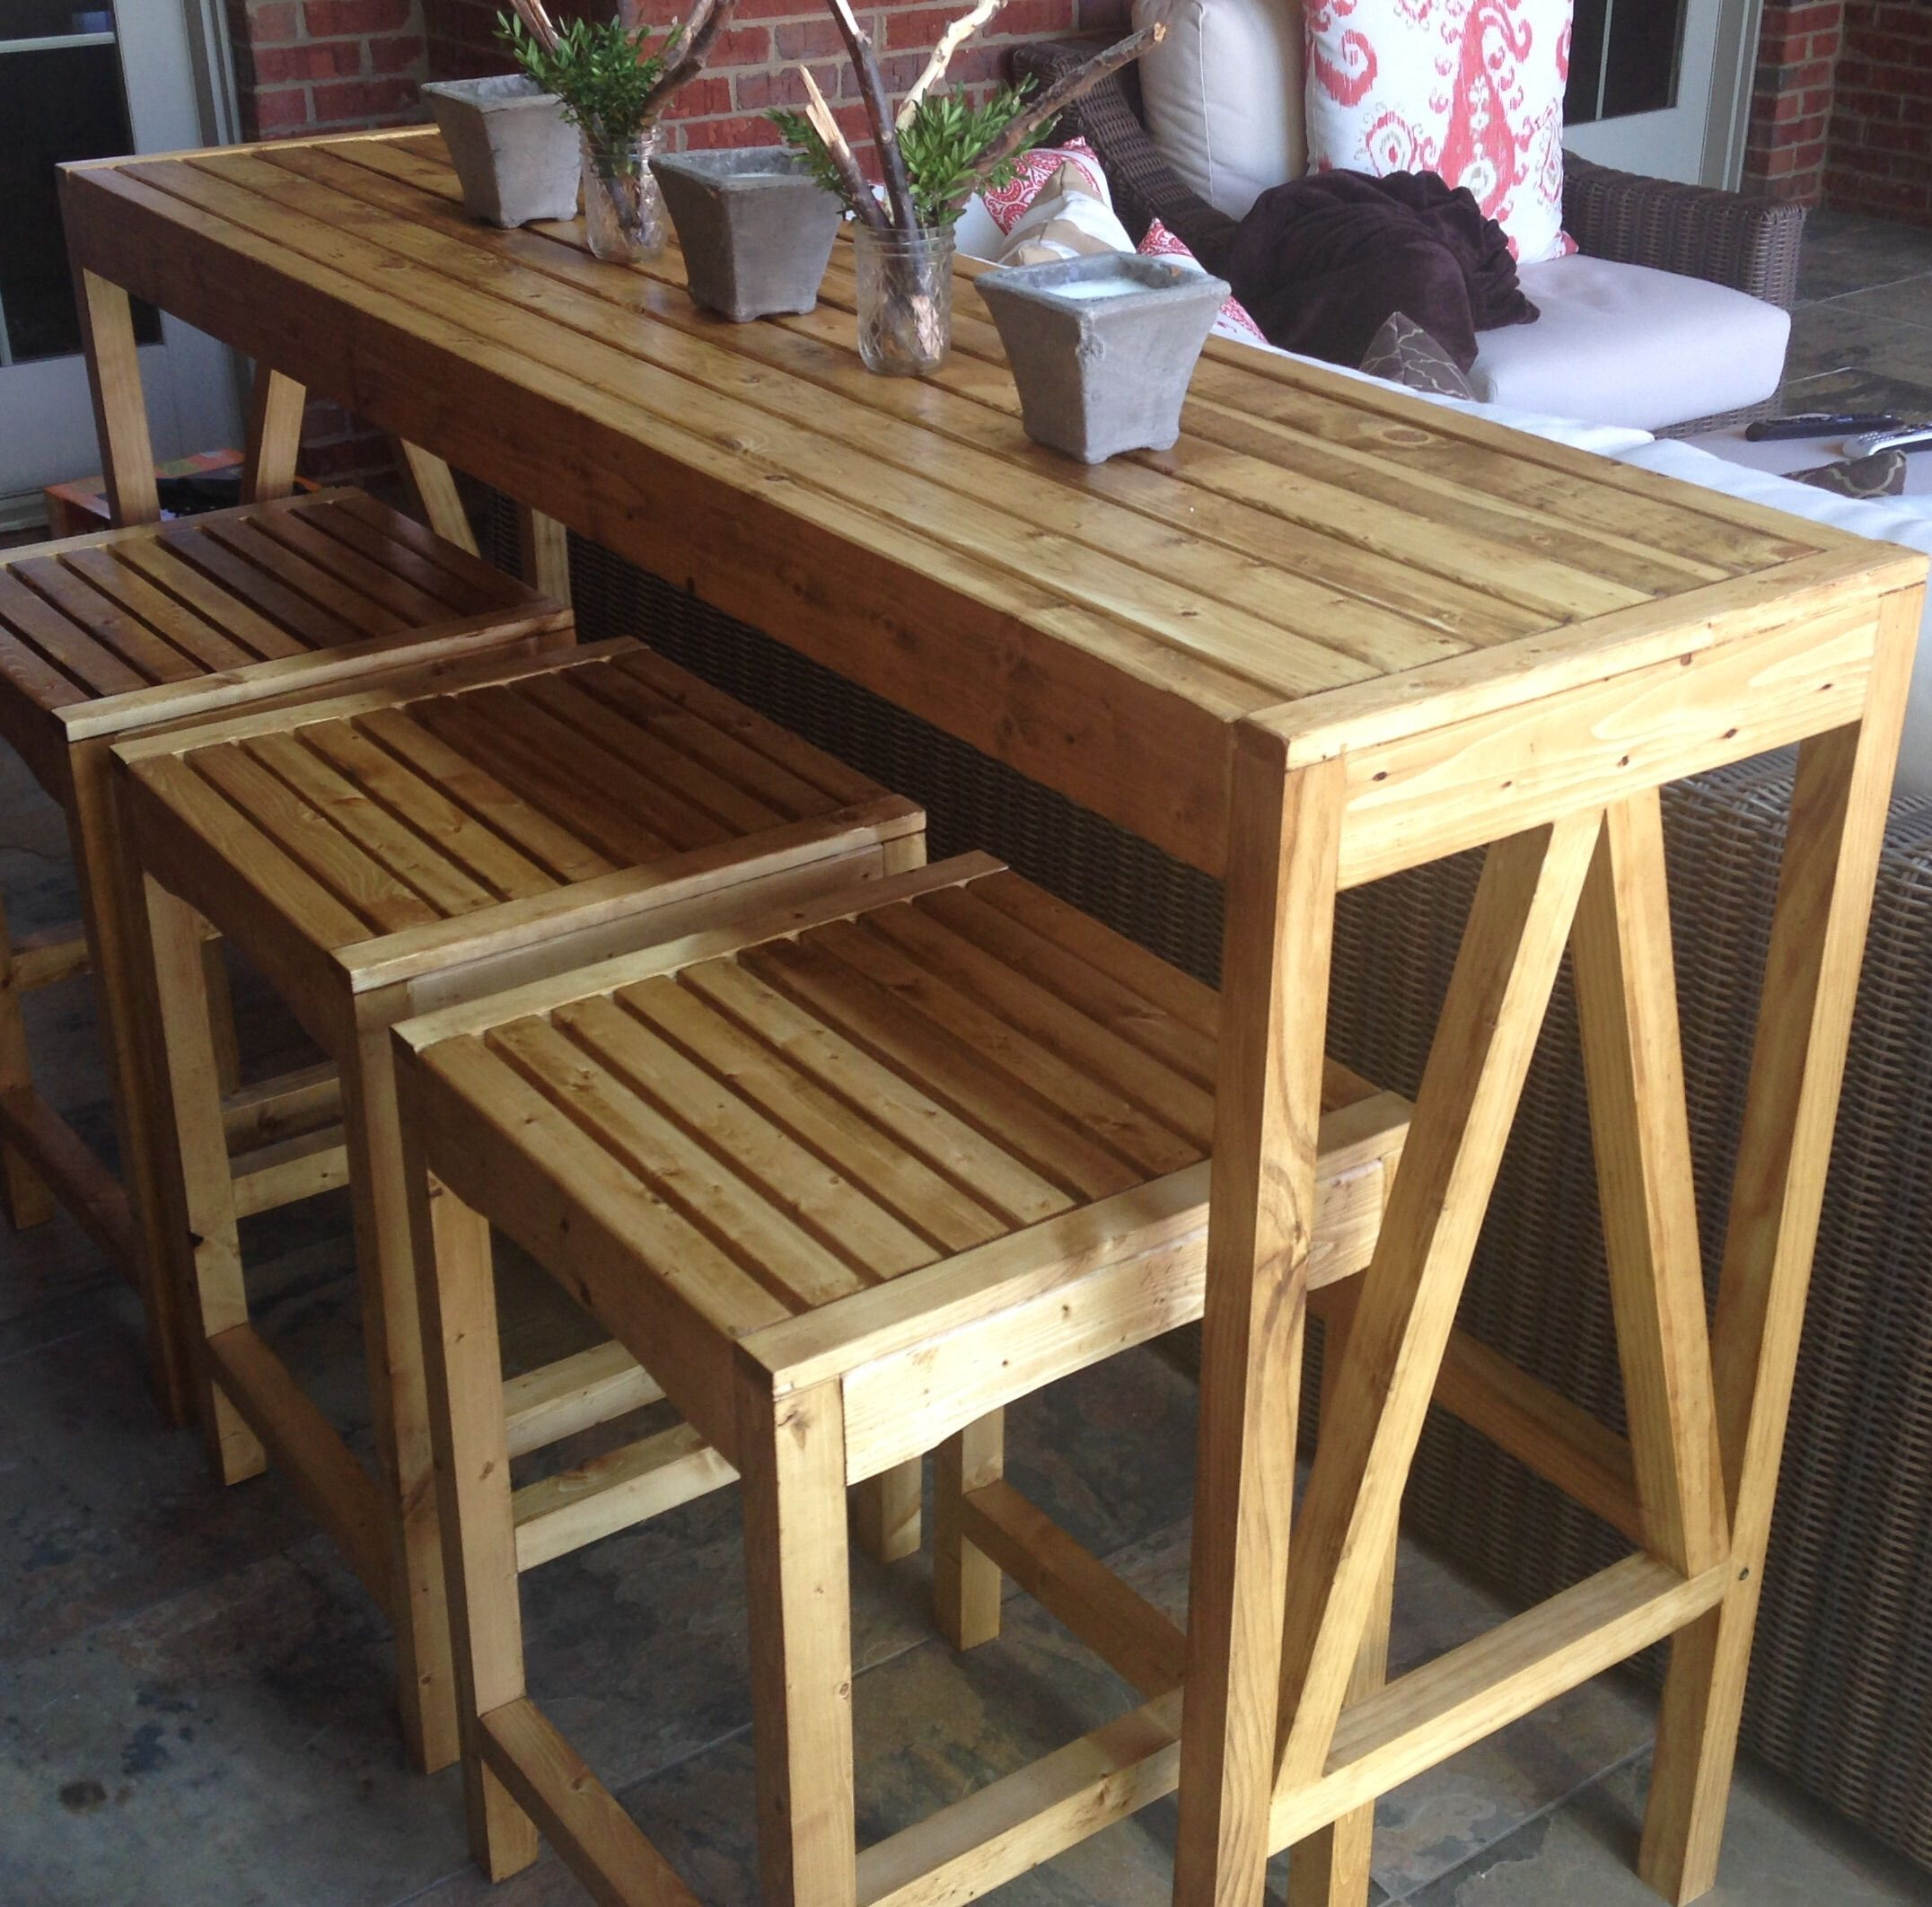 Easy wooden chair designs - Diy Outdoor Bar Table Plans For Ballard Designs Inspired Sutton